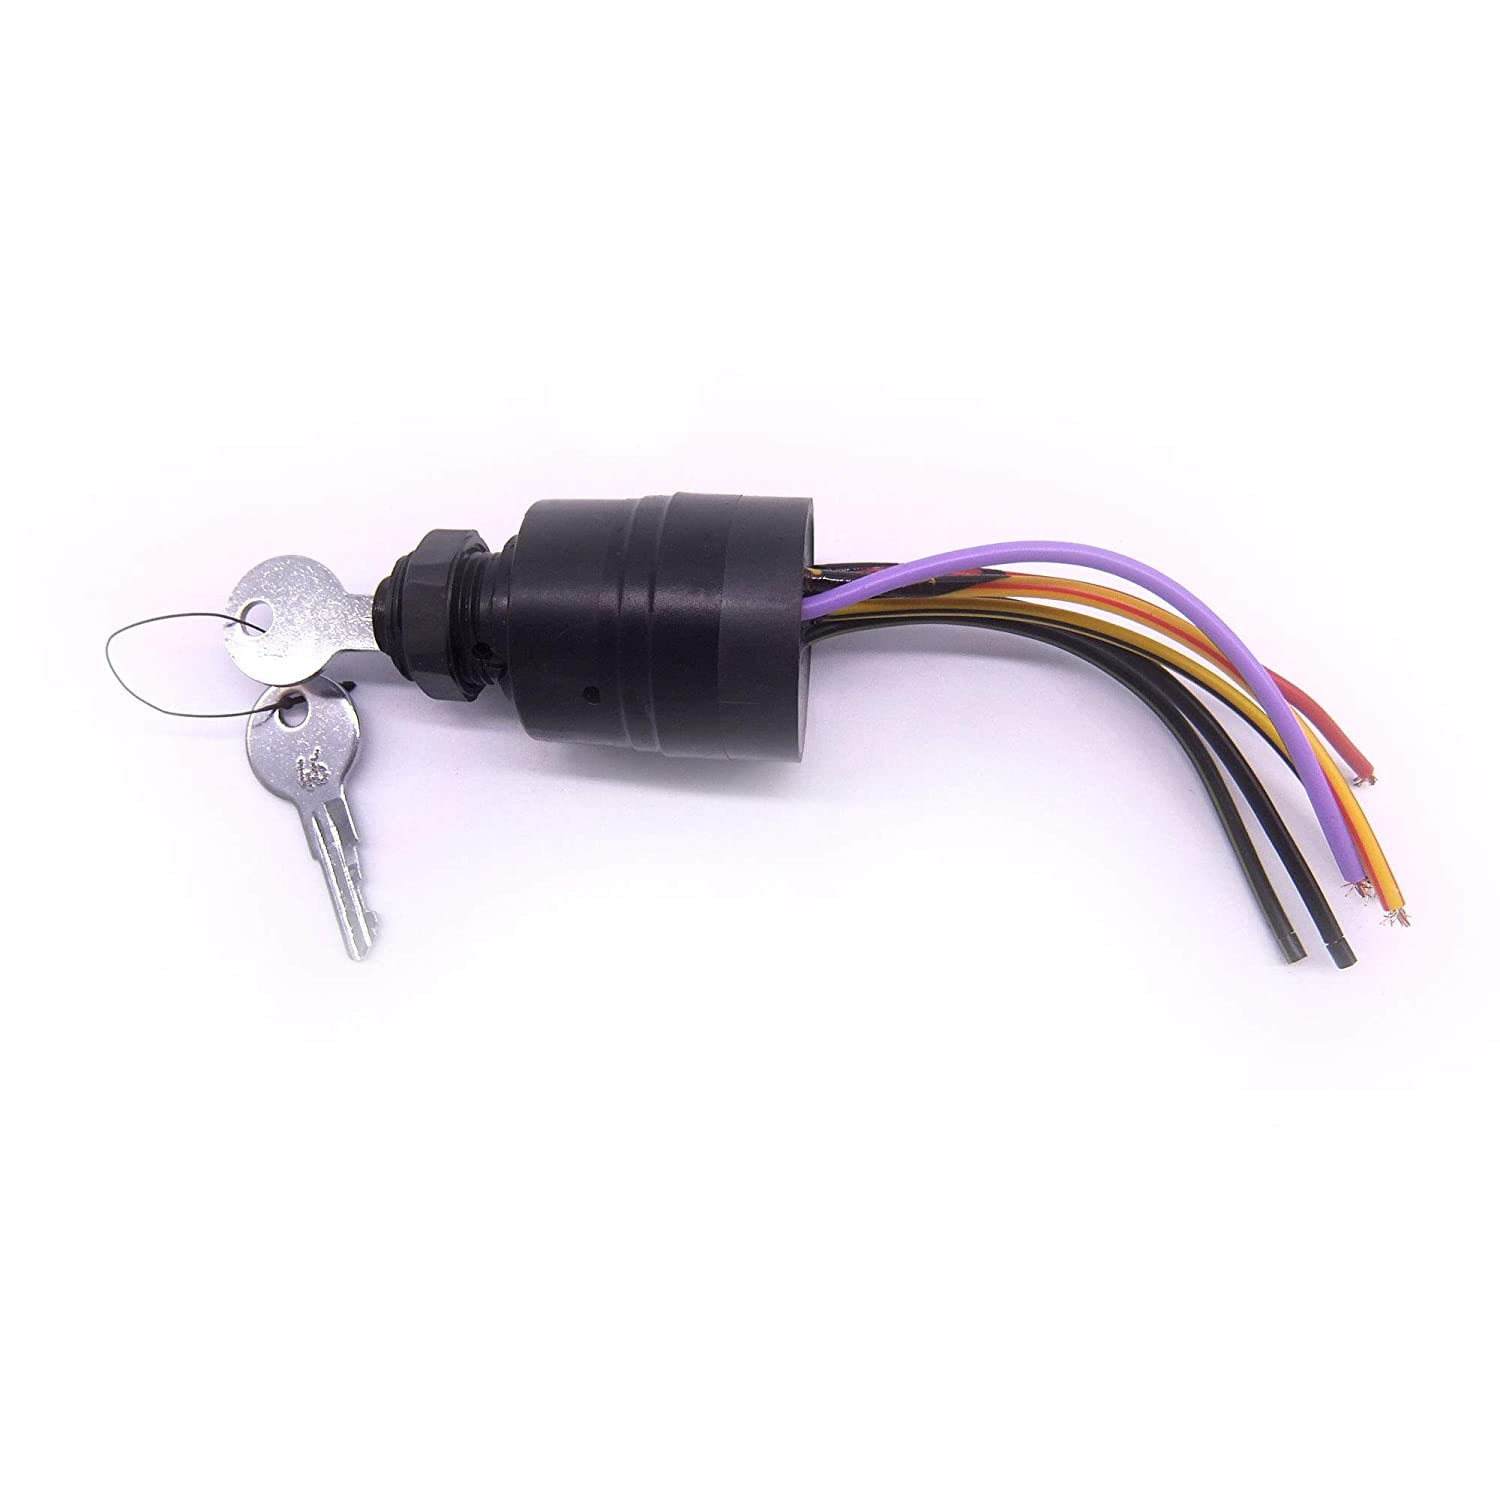 Boat Engine 87-17009A2 Ignition Switch for Mercury Outboard Motor Control Box, 3 Position, 6 Wire, Sierra MP41070-2